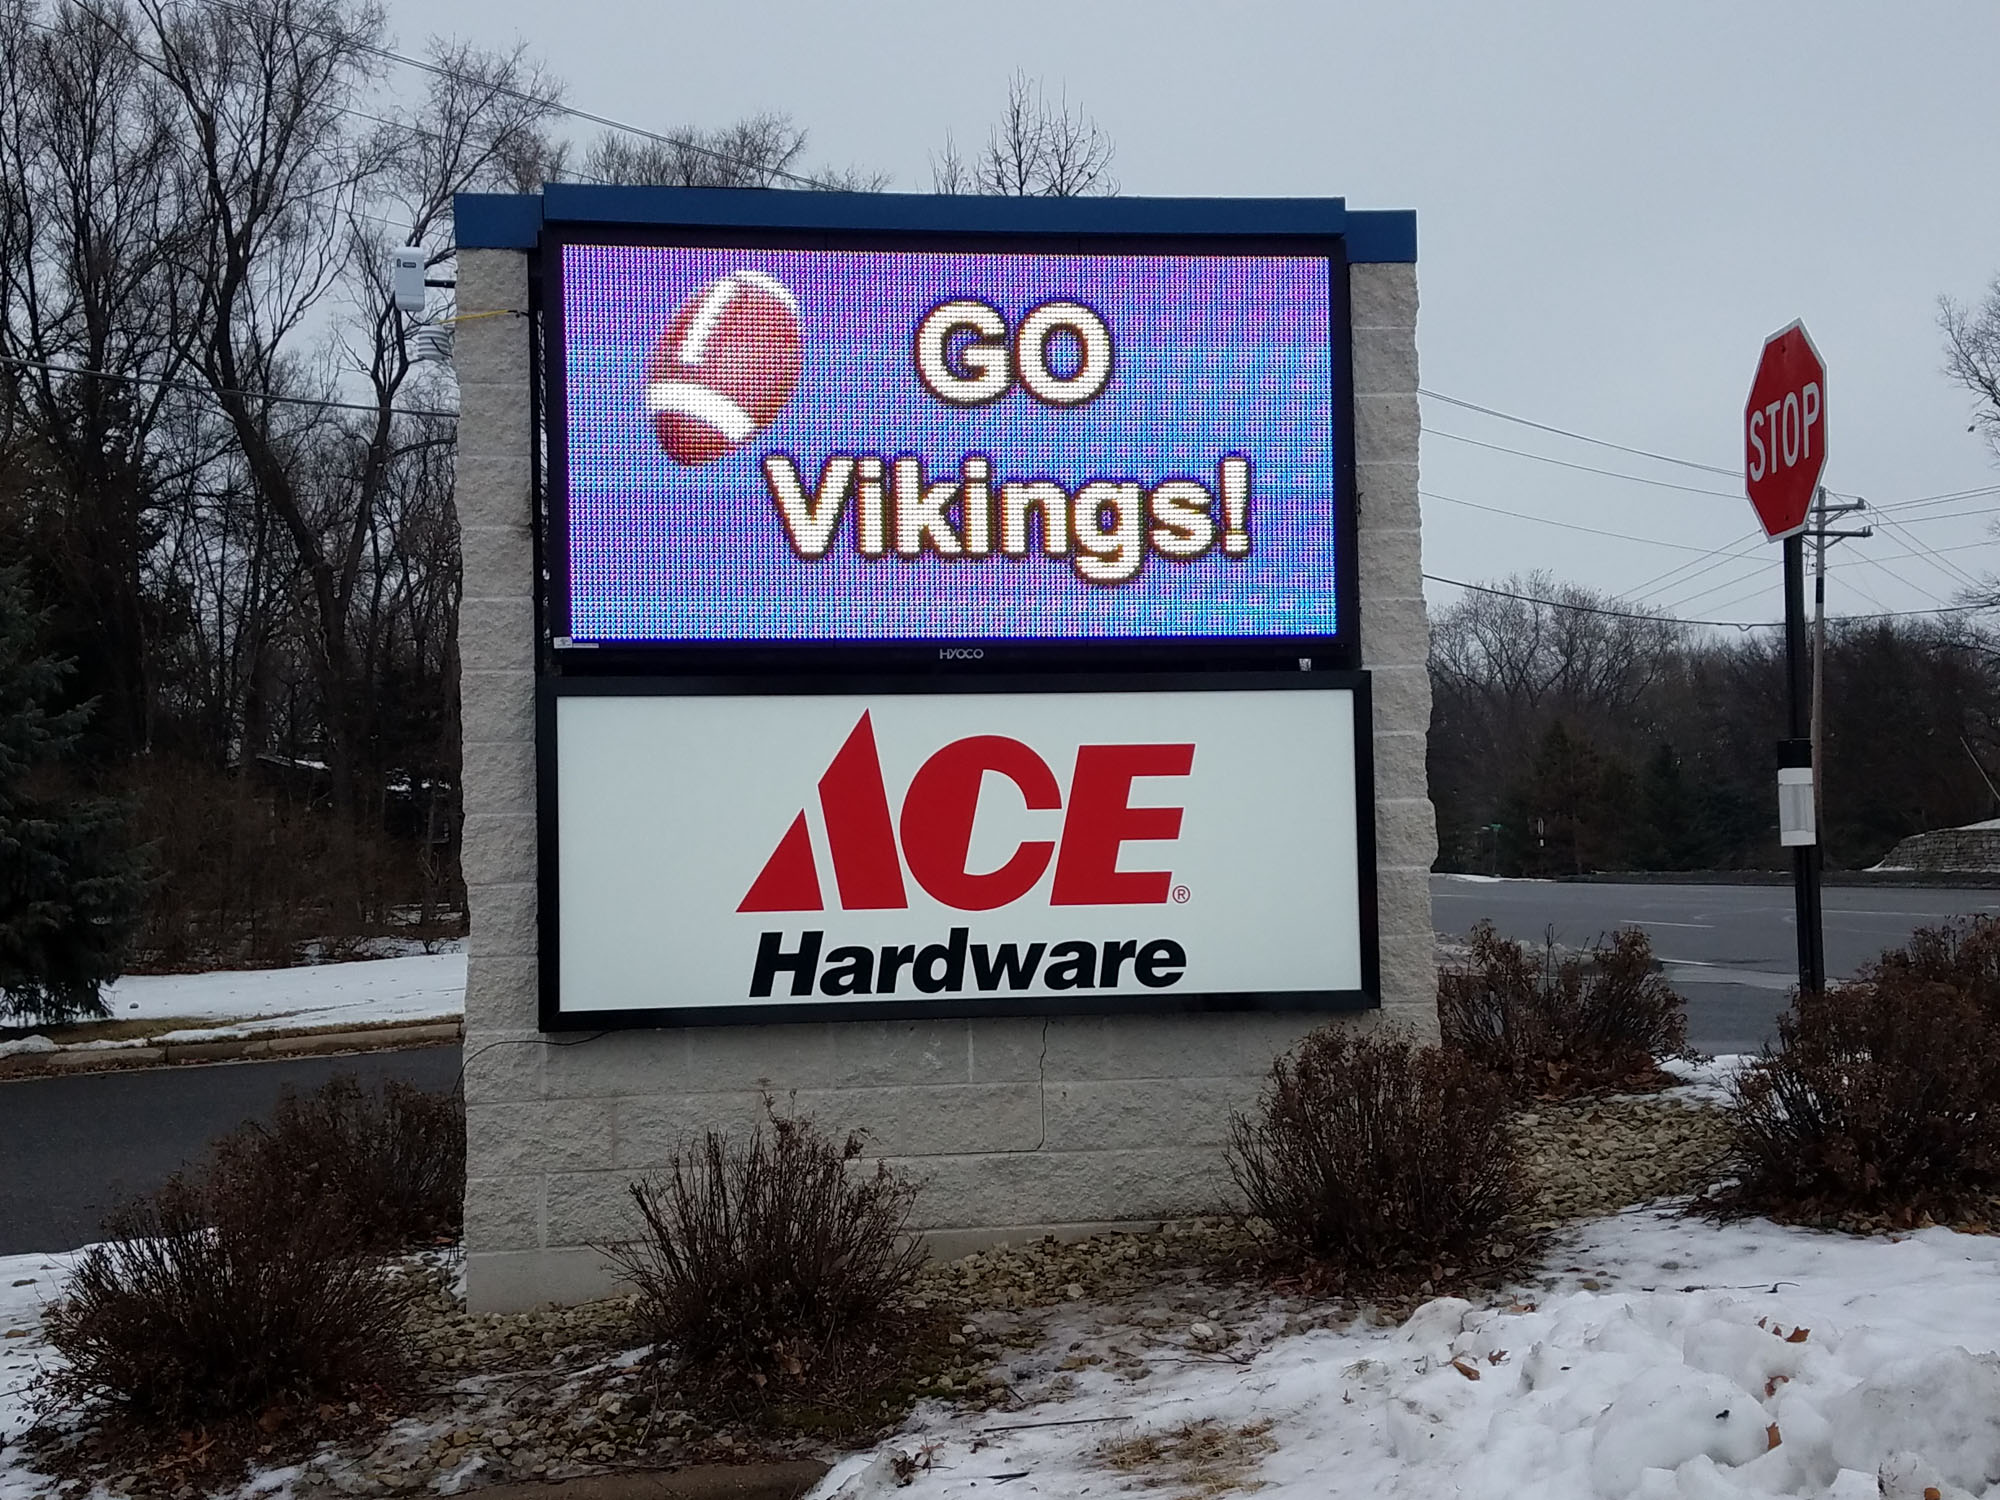 Ace Hardware Coon Rapids, Minnesota Monument sign with digital message center LED illuminated cabinet mounted on brick pillar base